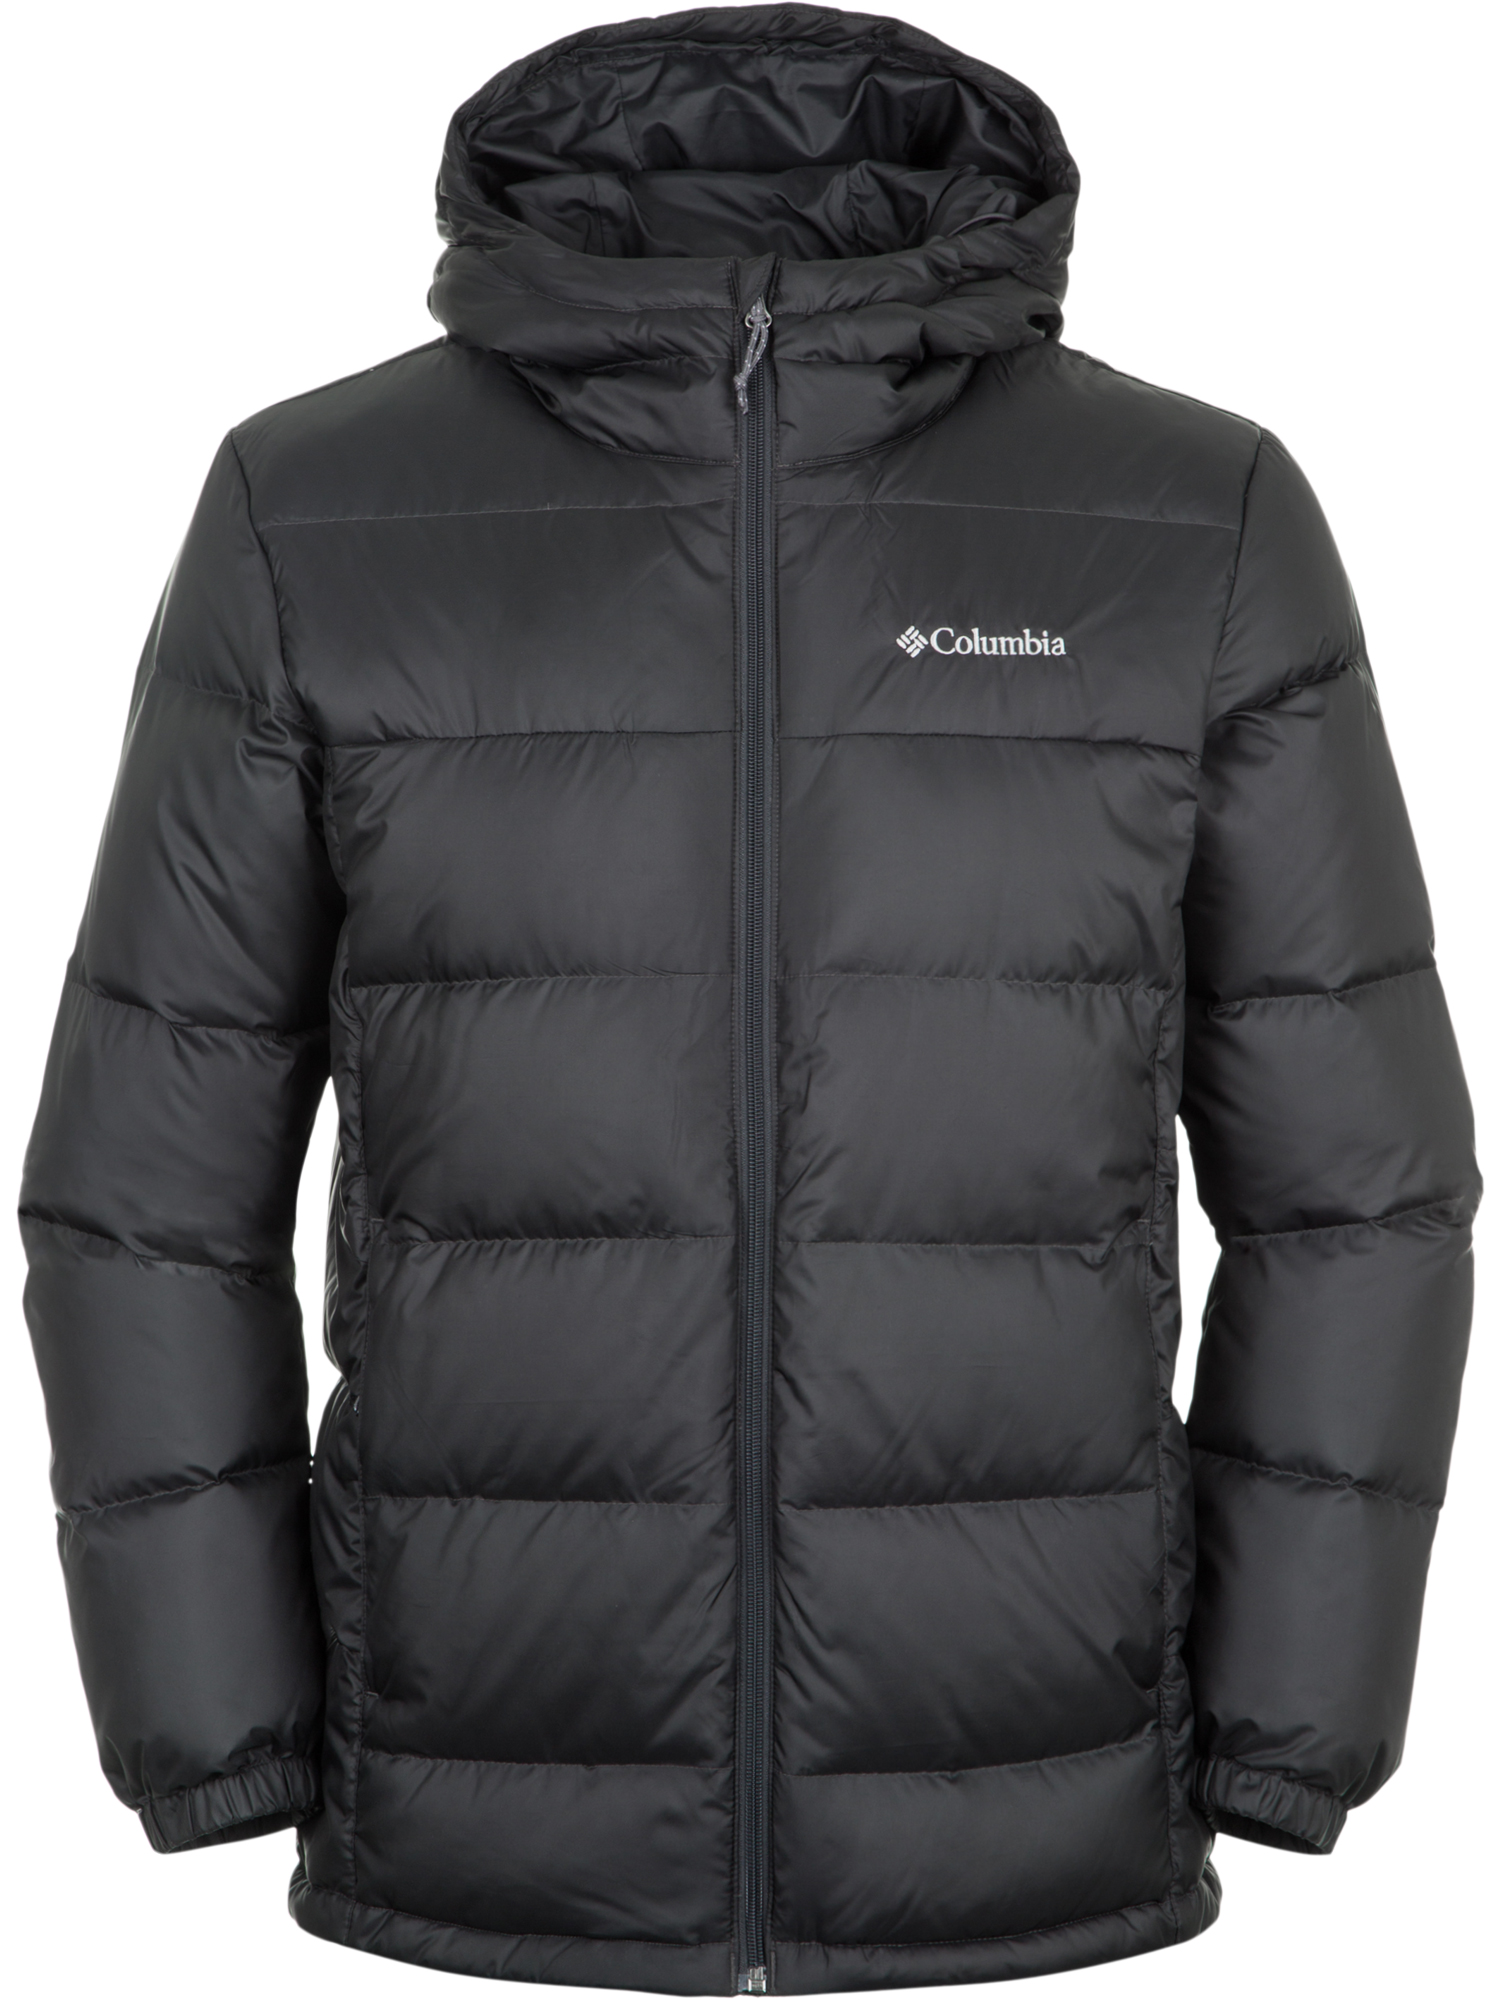 Пуховик Columbia Shelldrake Point Men's Down Jacket